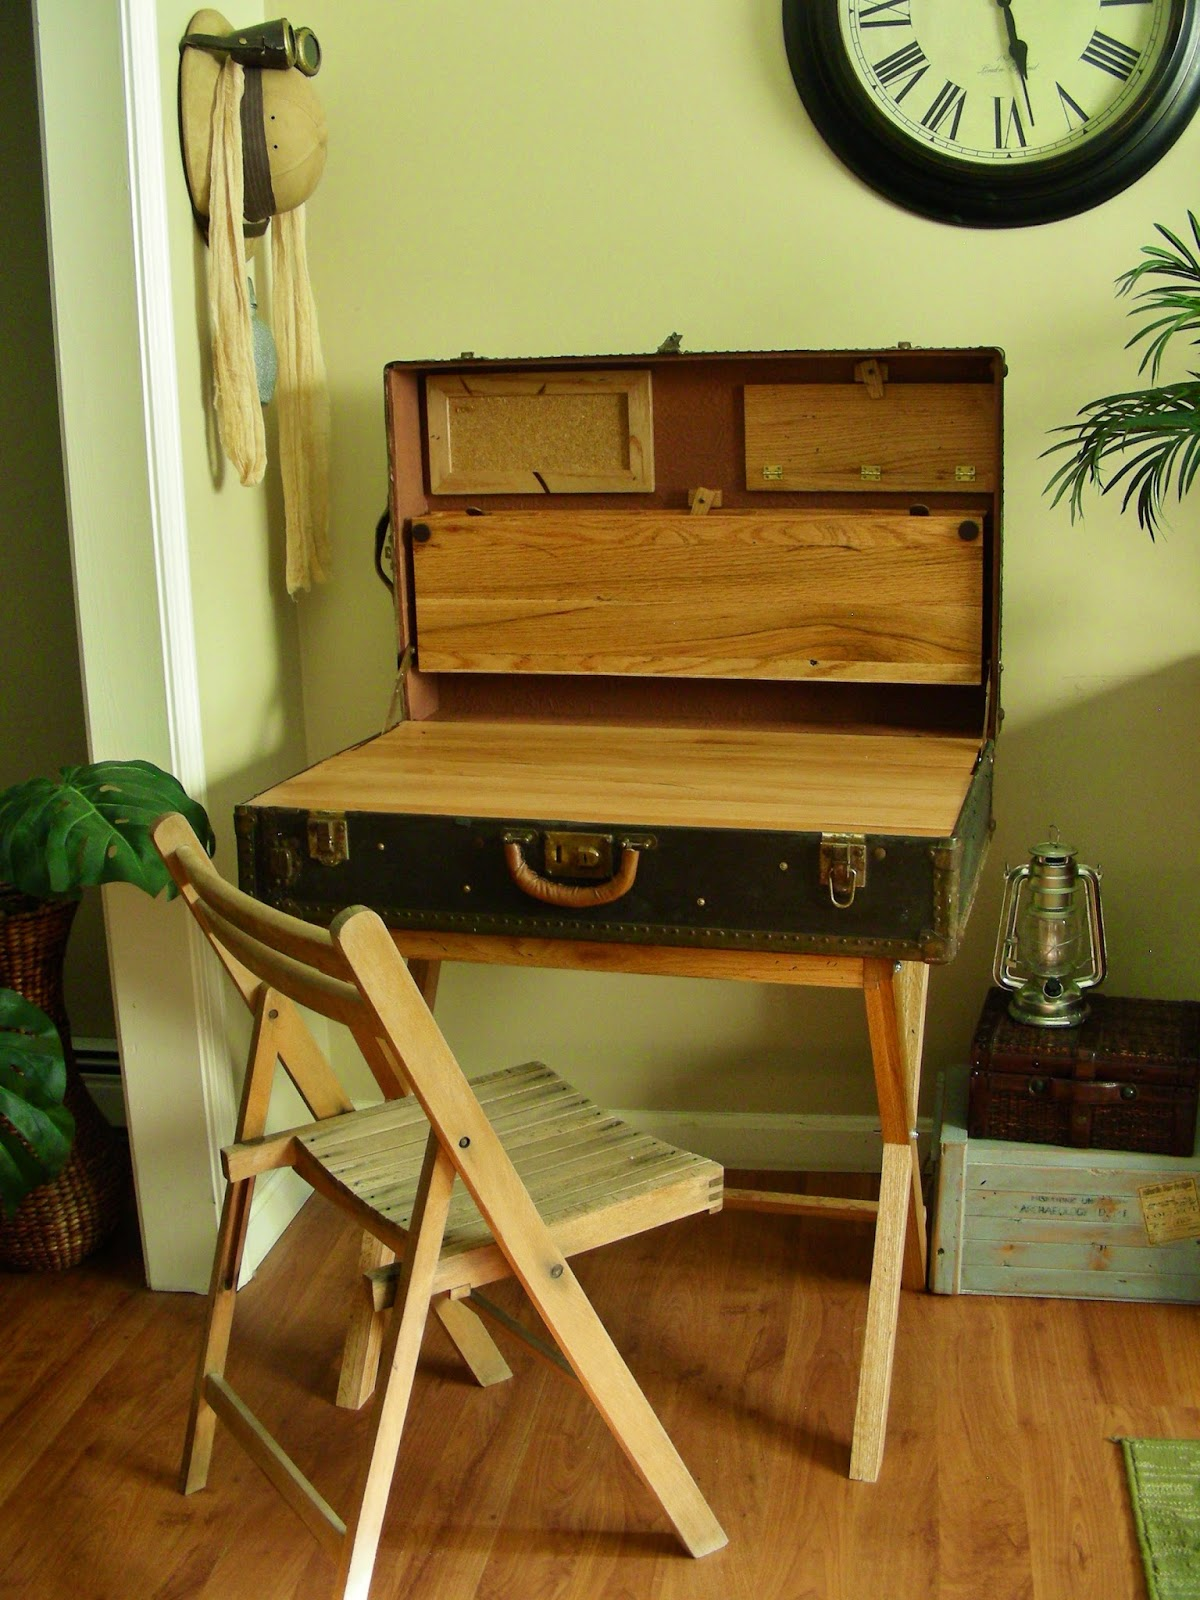 Destinations Vintage Upcycled Amp Repurposed Stuff Upcycled Suitcase Becomes A Campaign Writing Desk